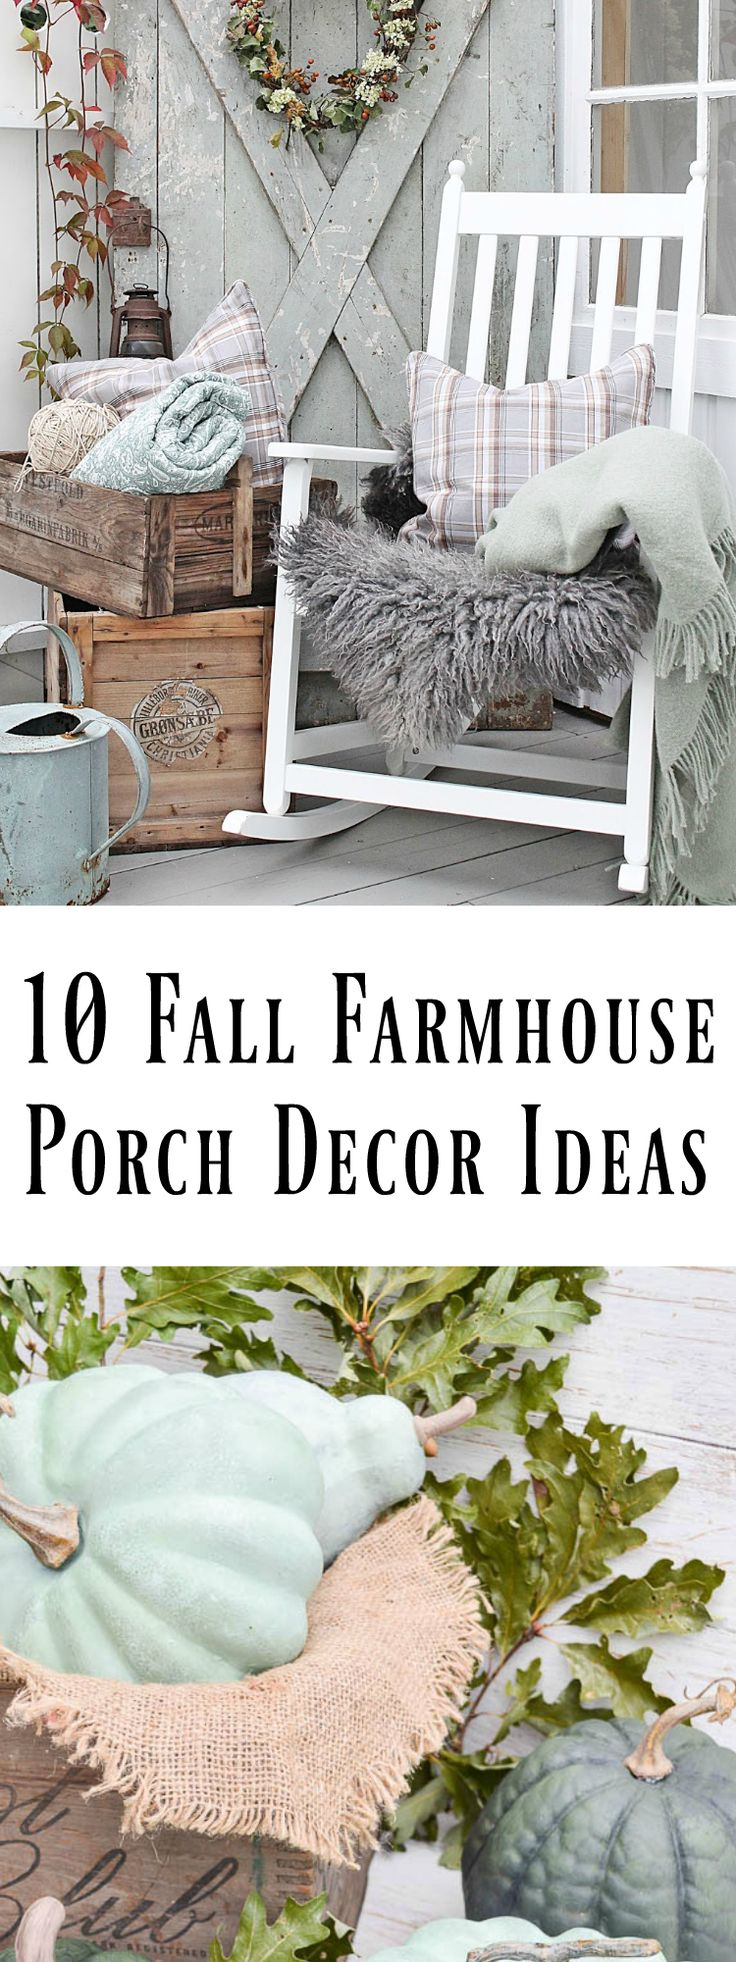 205 best Country Living images on Pinterest | Craft, Farmhouse ...